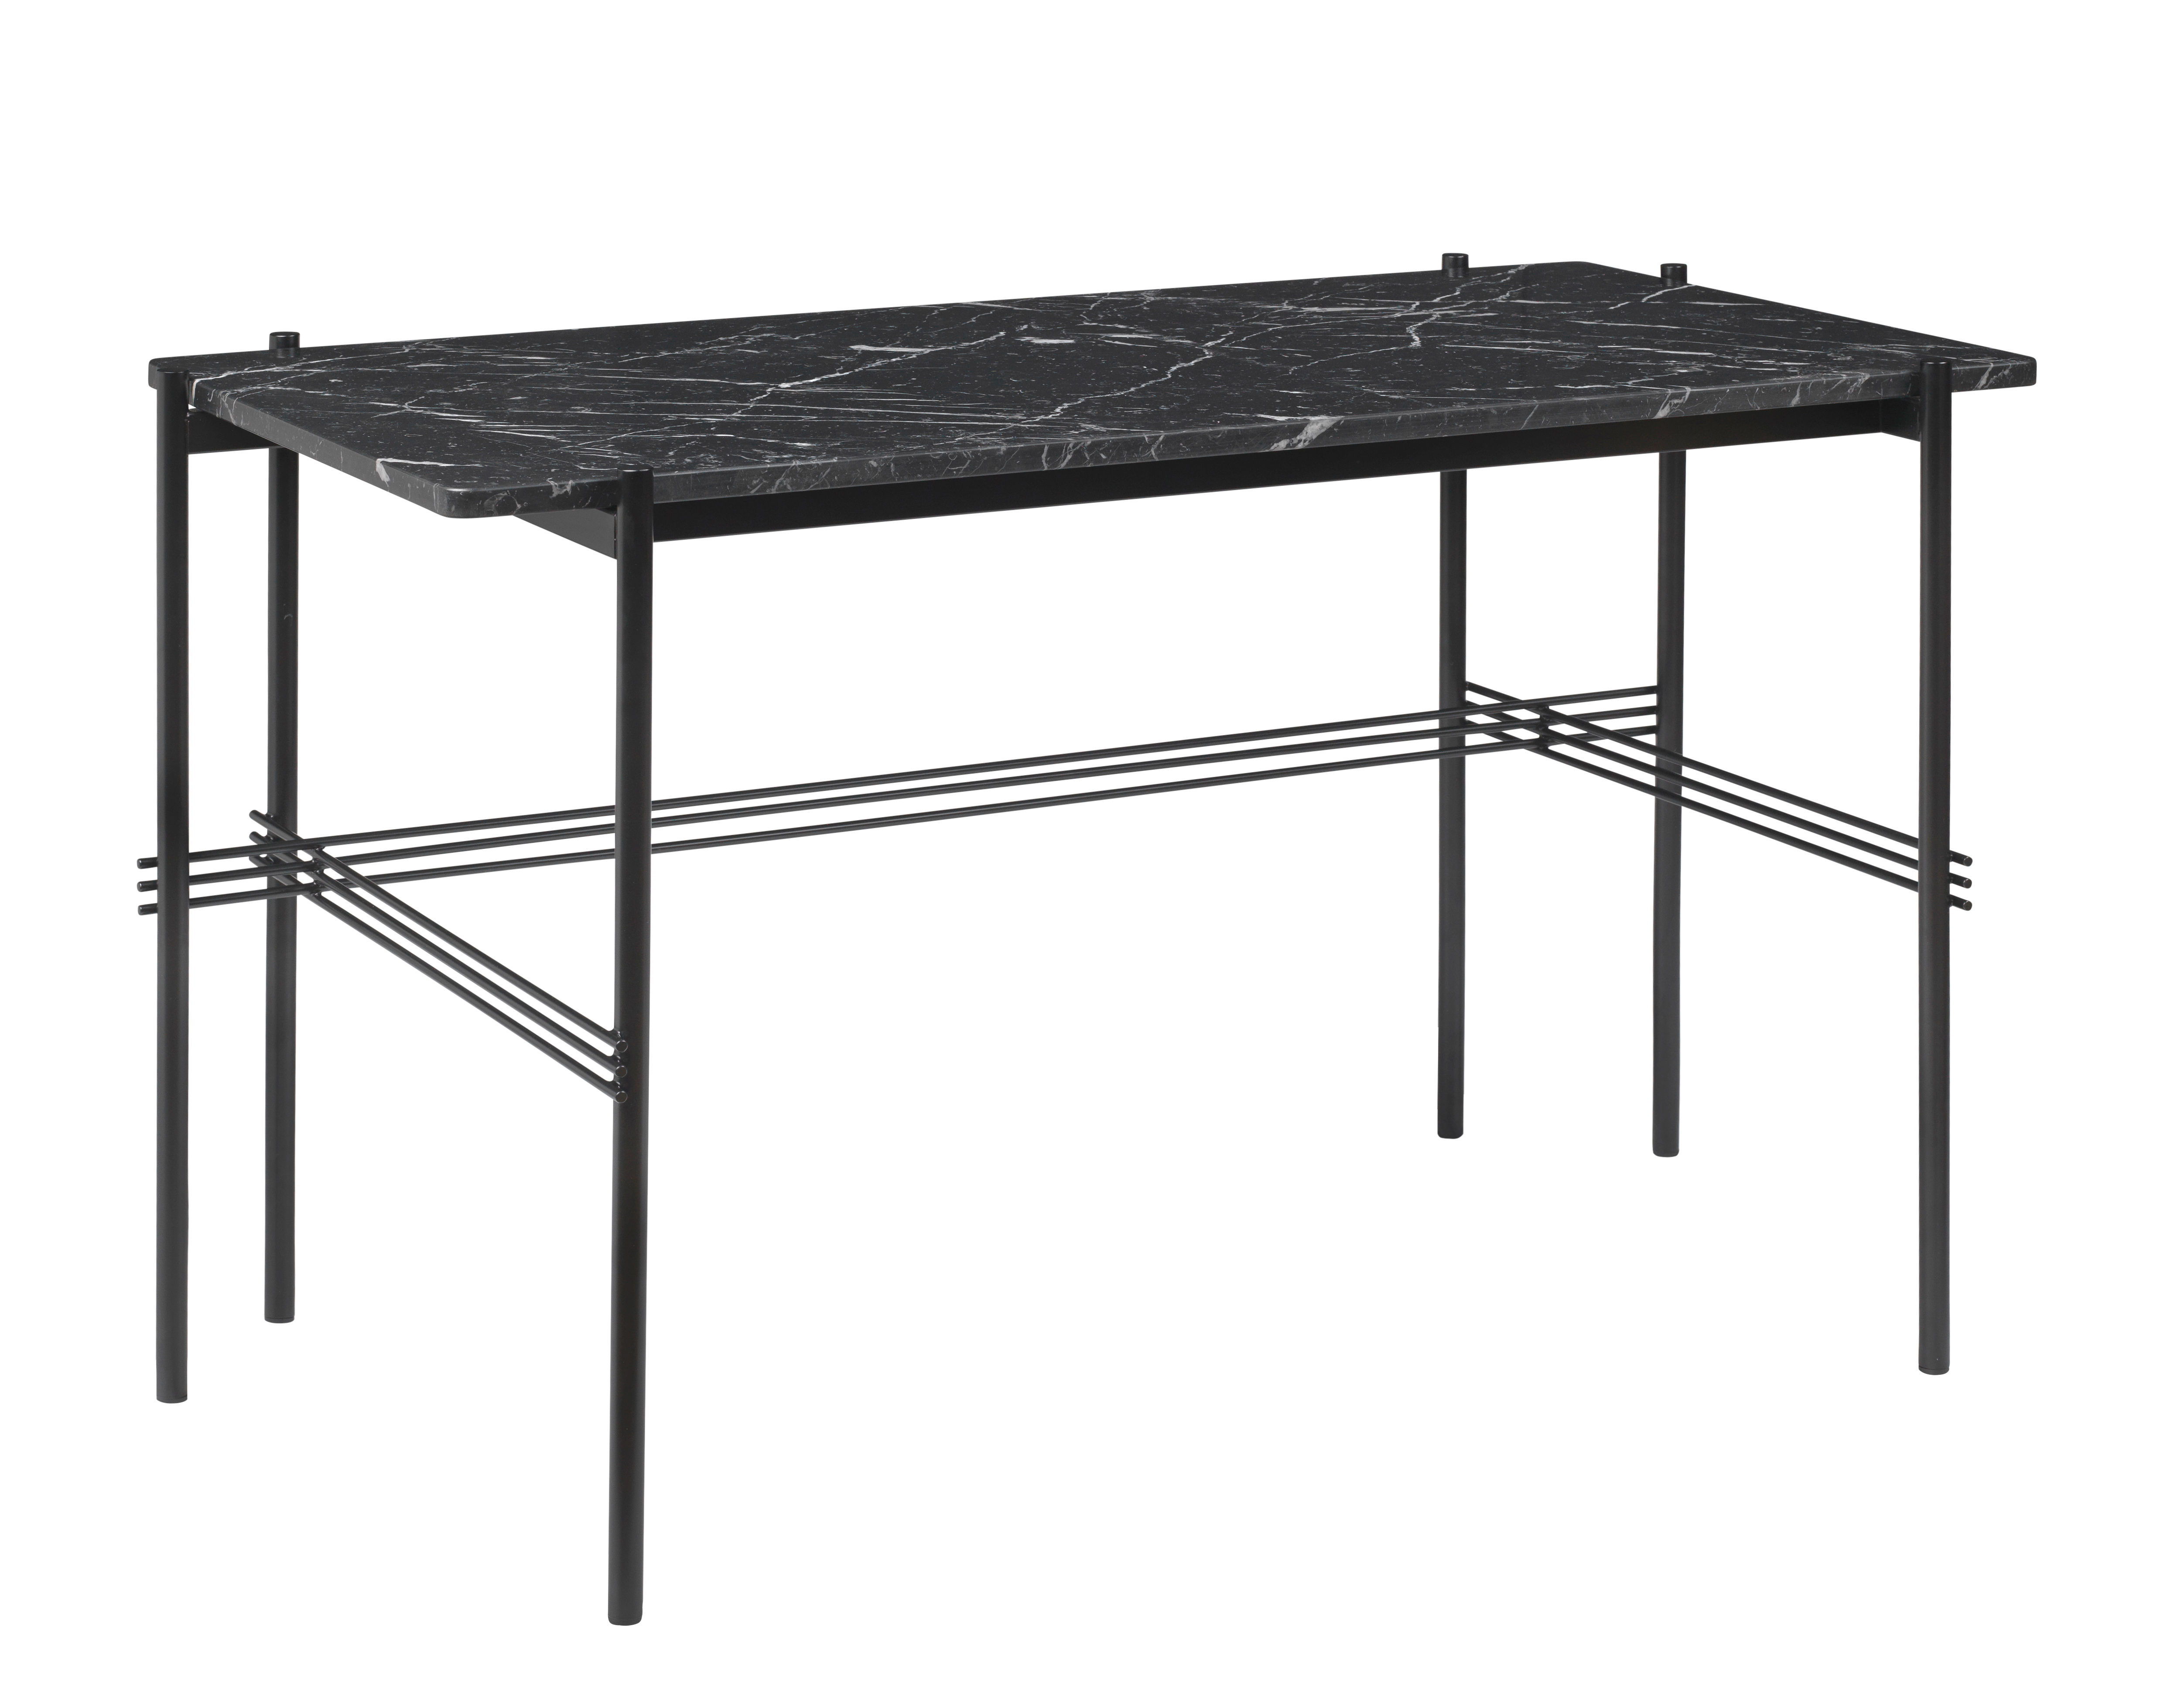 Furniture - Office Furniture - TS Desk - Marble/Gamfratesi - L 120 cm by Gubi - Black Marble/Black legs - Lacquered metal, Marquina marble